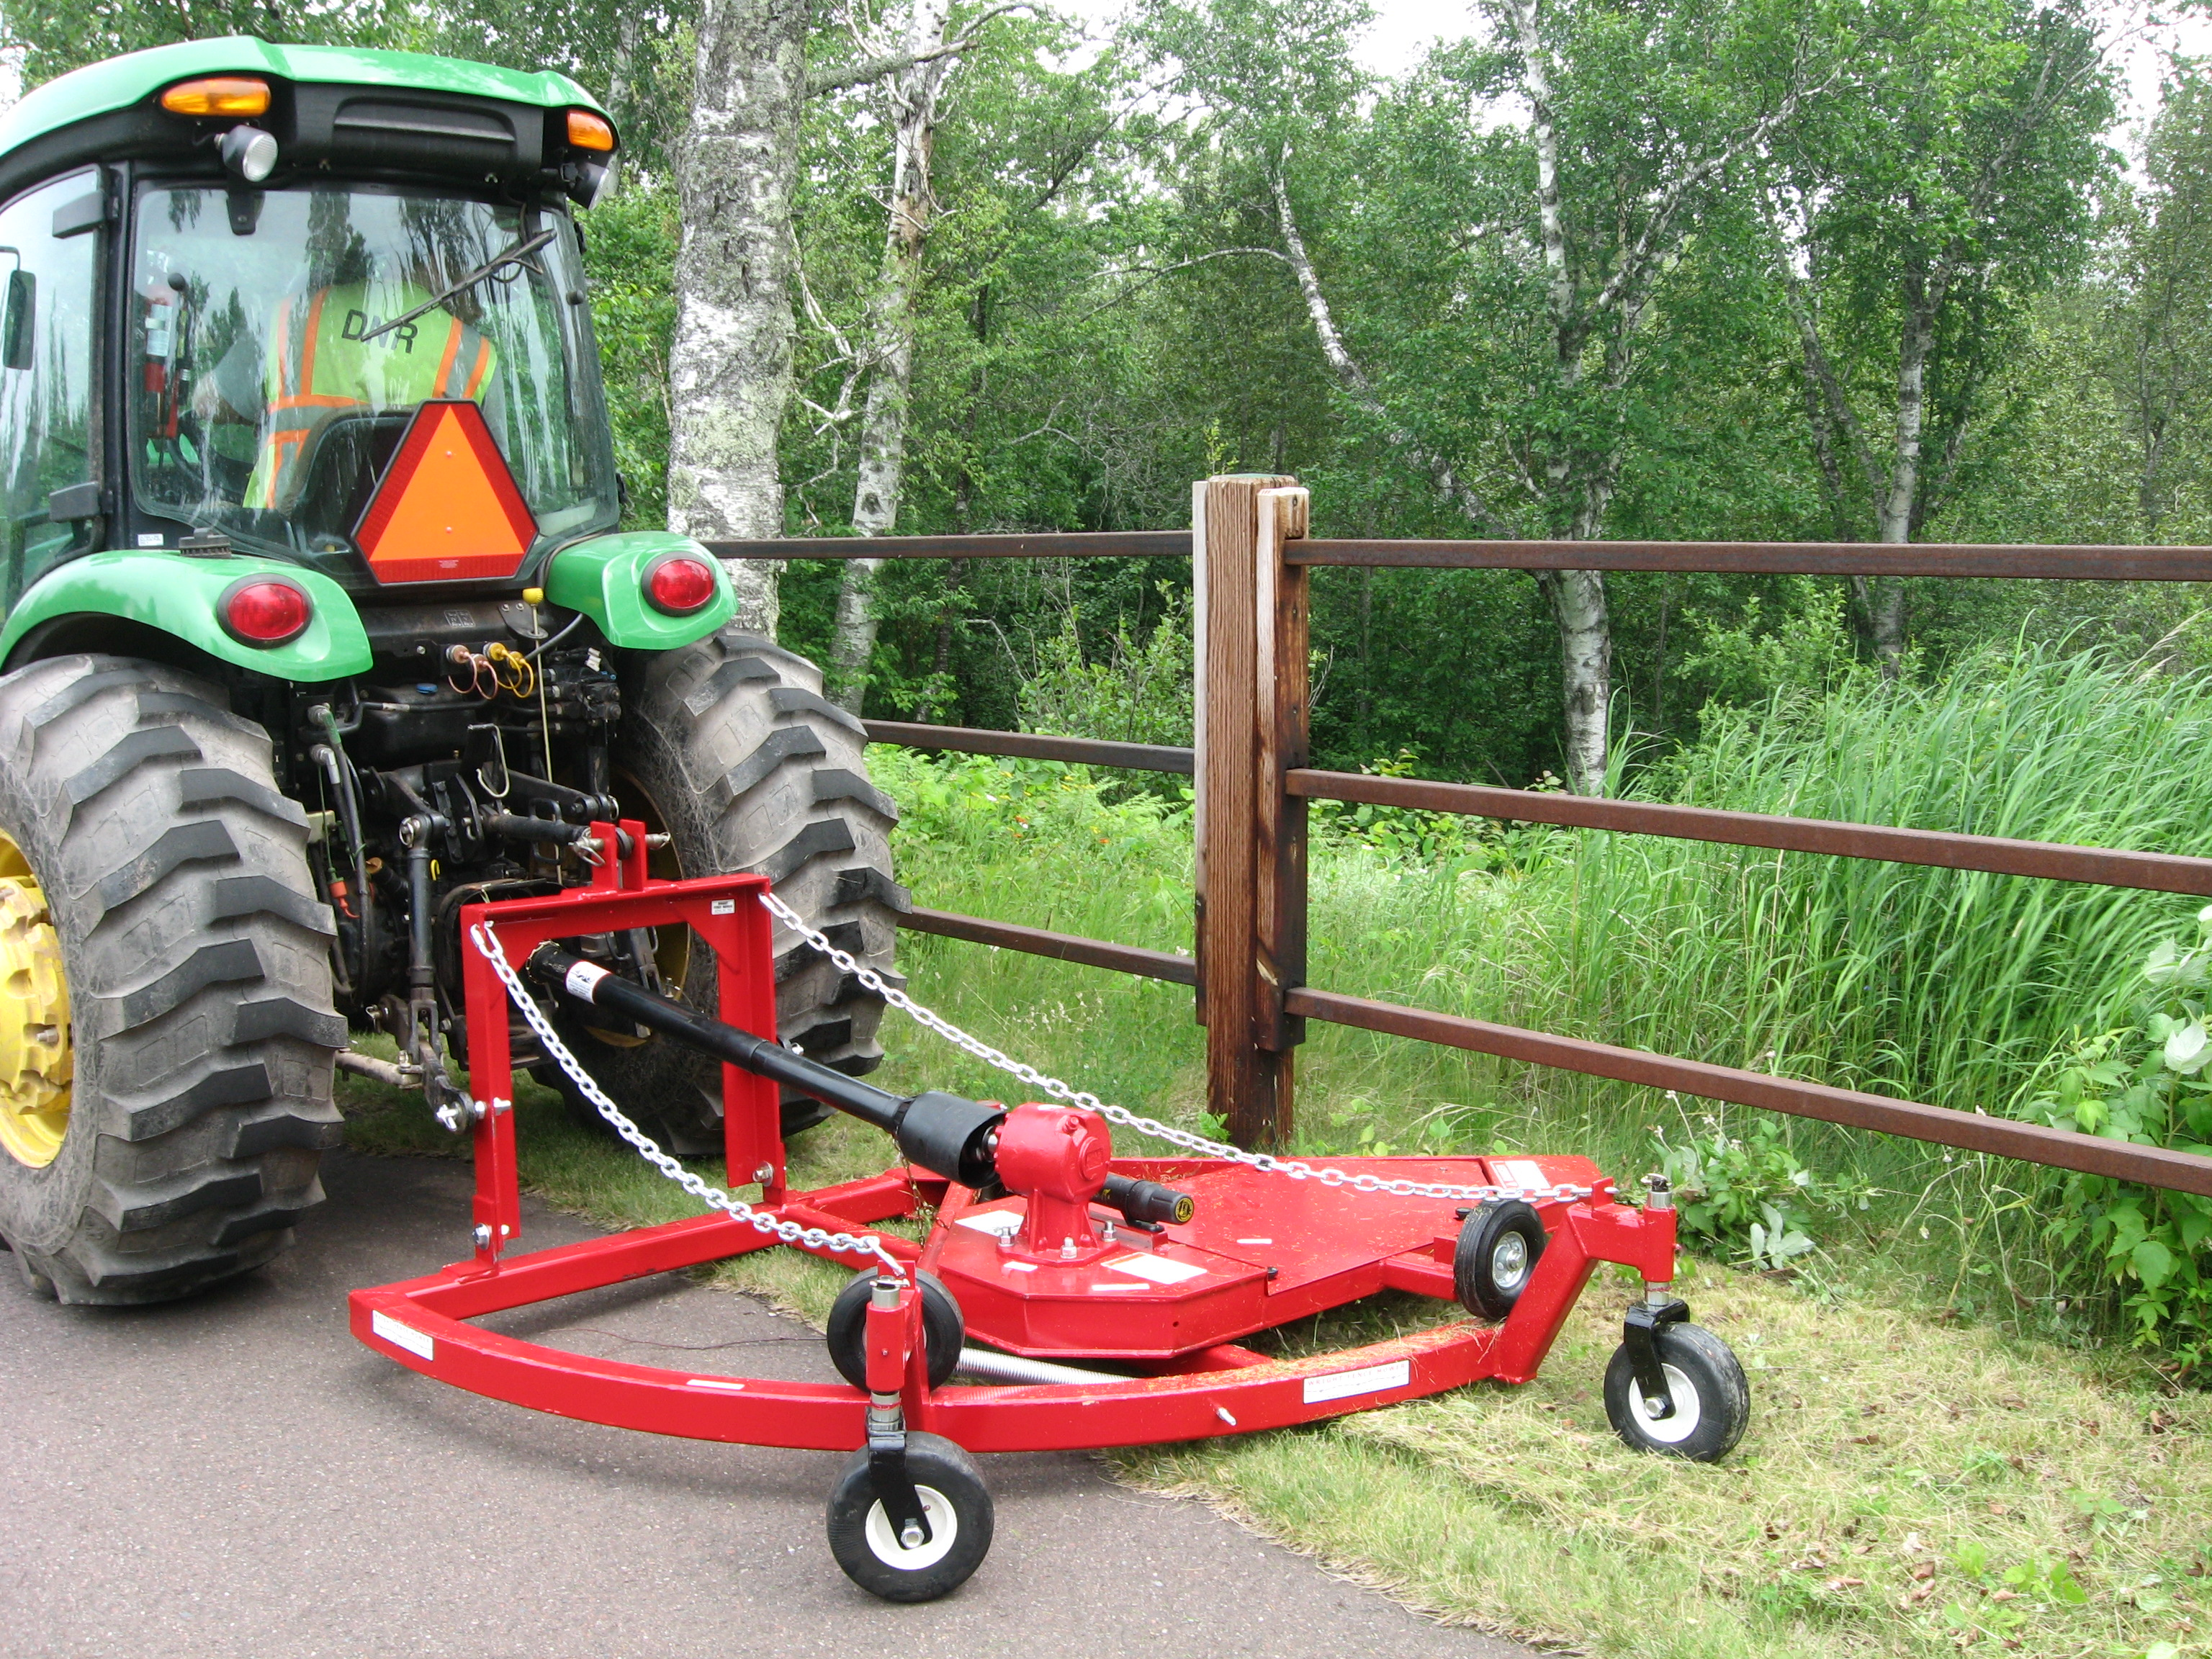 Lawn mower attachment on a tractor